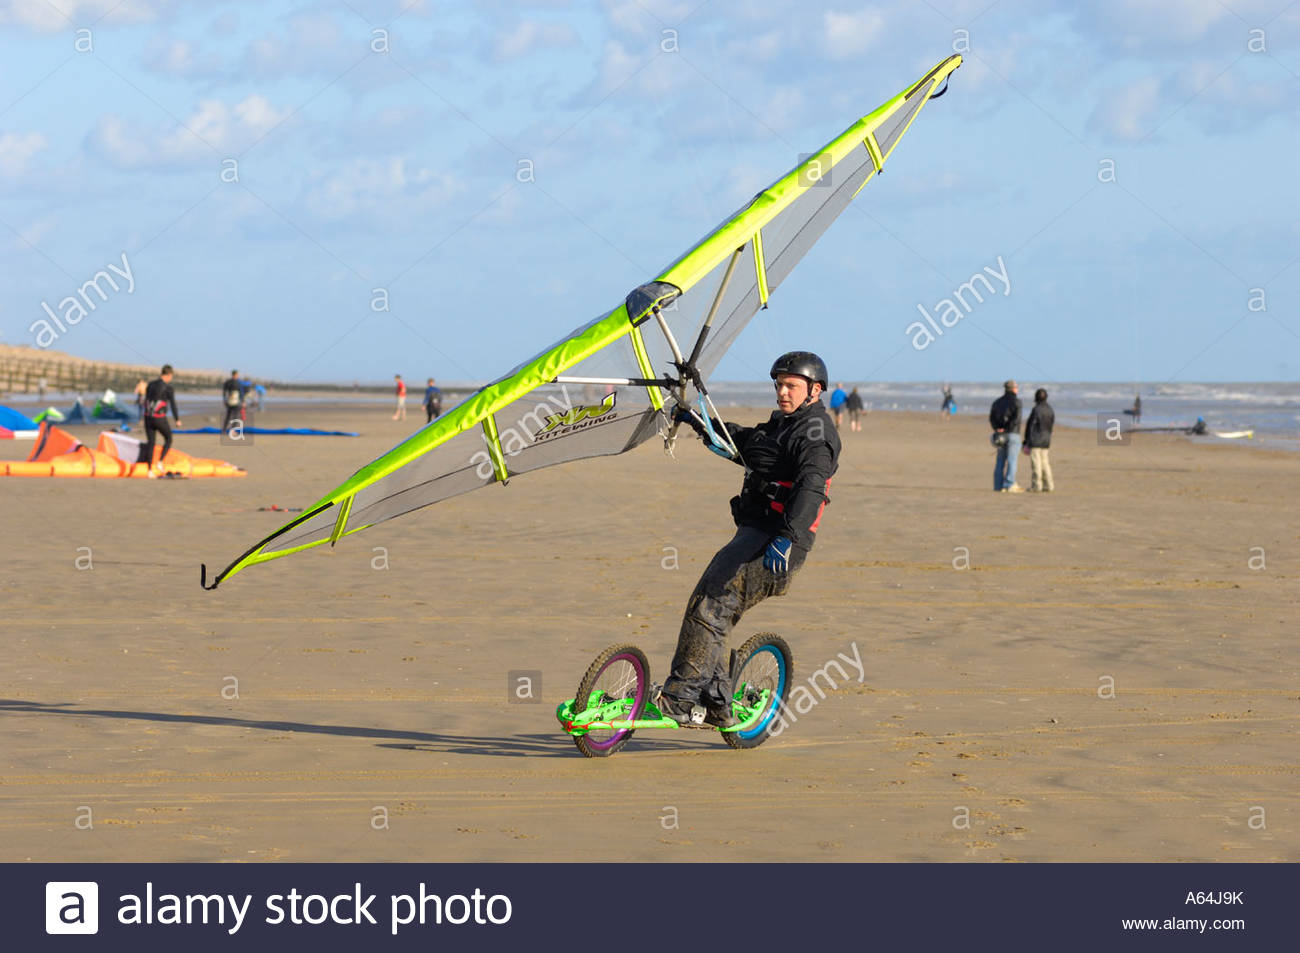 land-board-surfer-on-the-beach-at-camber-sands-rye-east-sussex-england-A64J9K.jpg